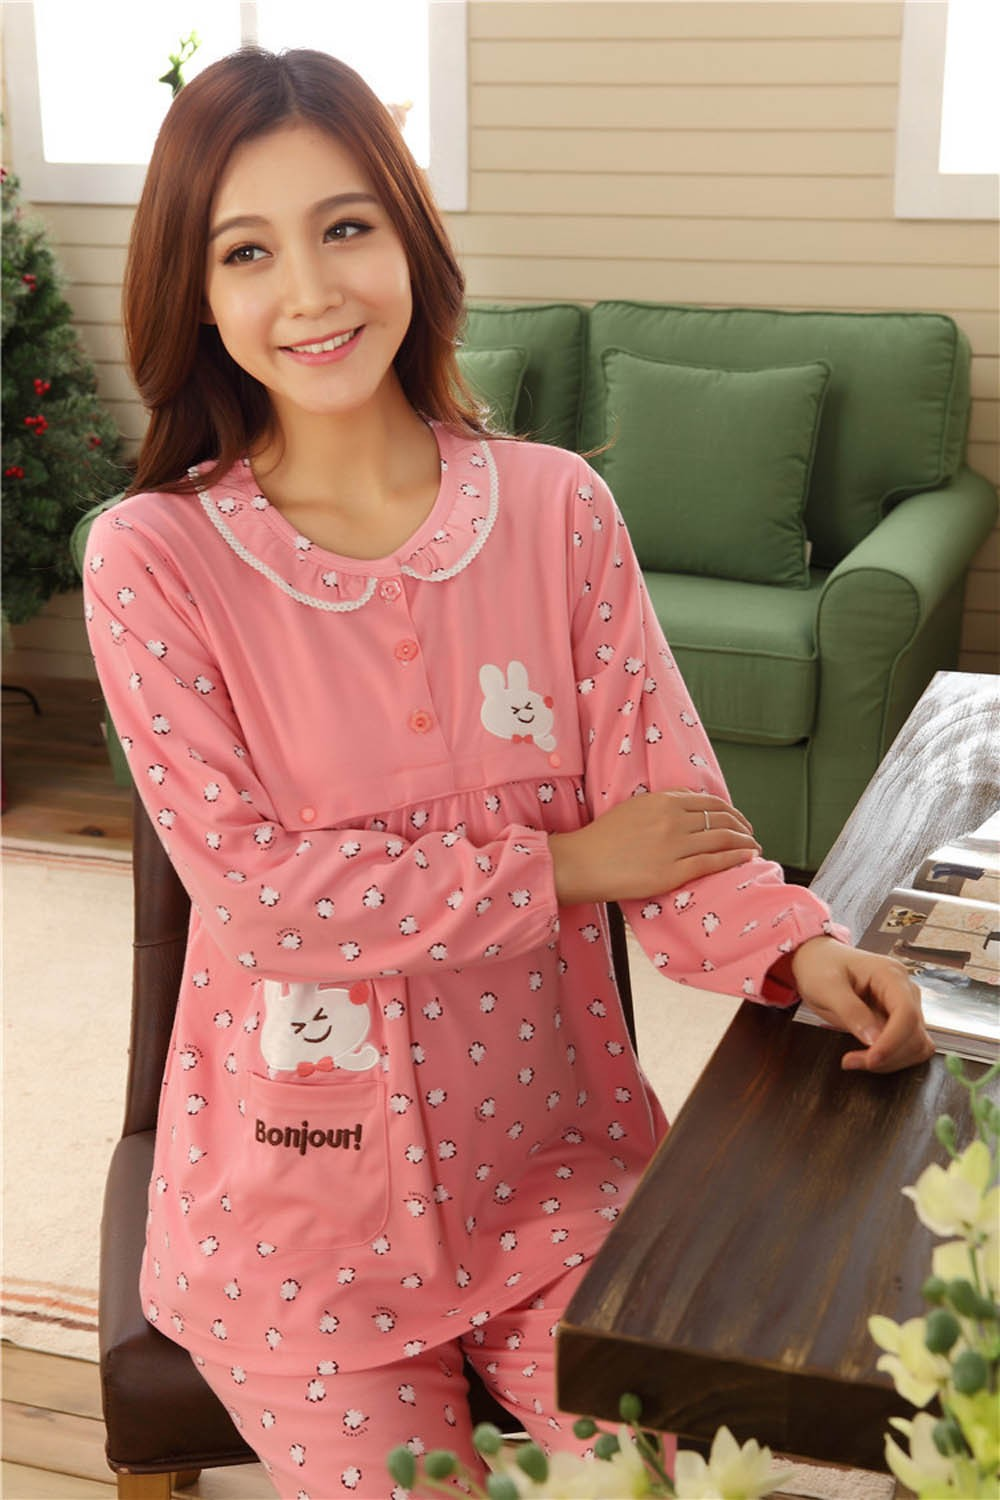 Pregnant-Woman-Pajamas-Postpartum-Breastfeeding-Month-Of-Serving-Lapel-Clothes-Long-sleeve-Sleepwear-Suits-CL0800 (13)